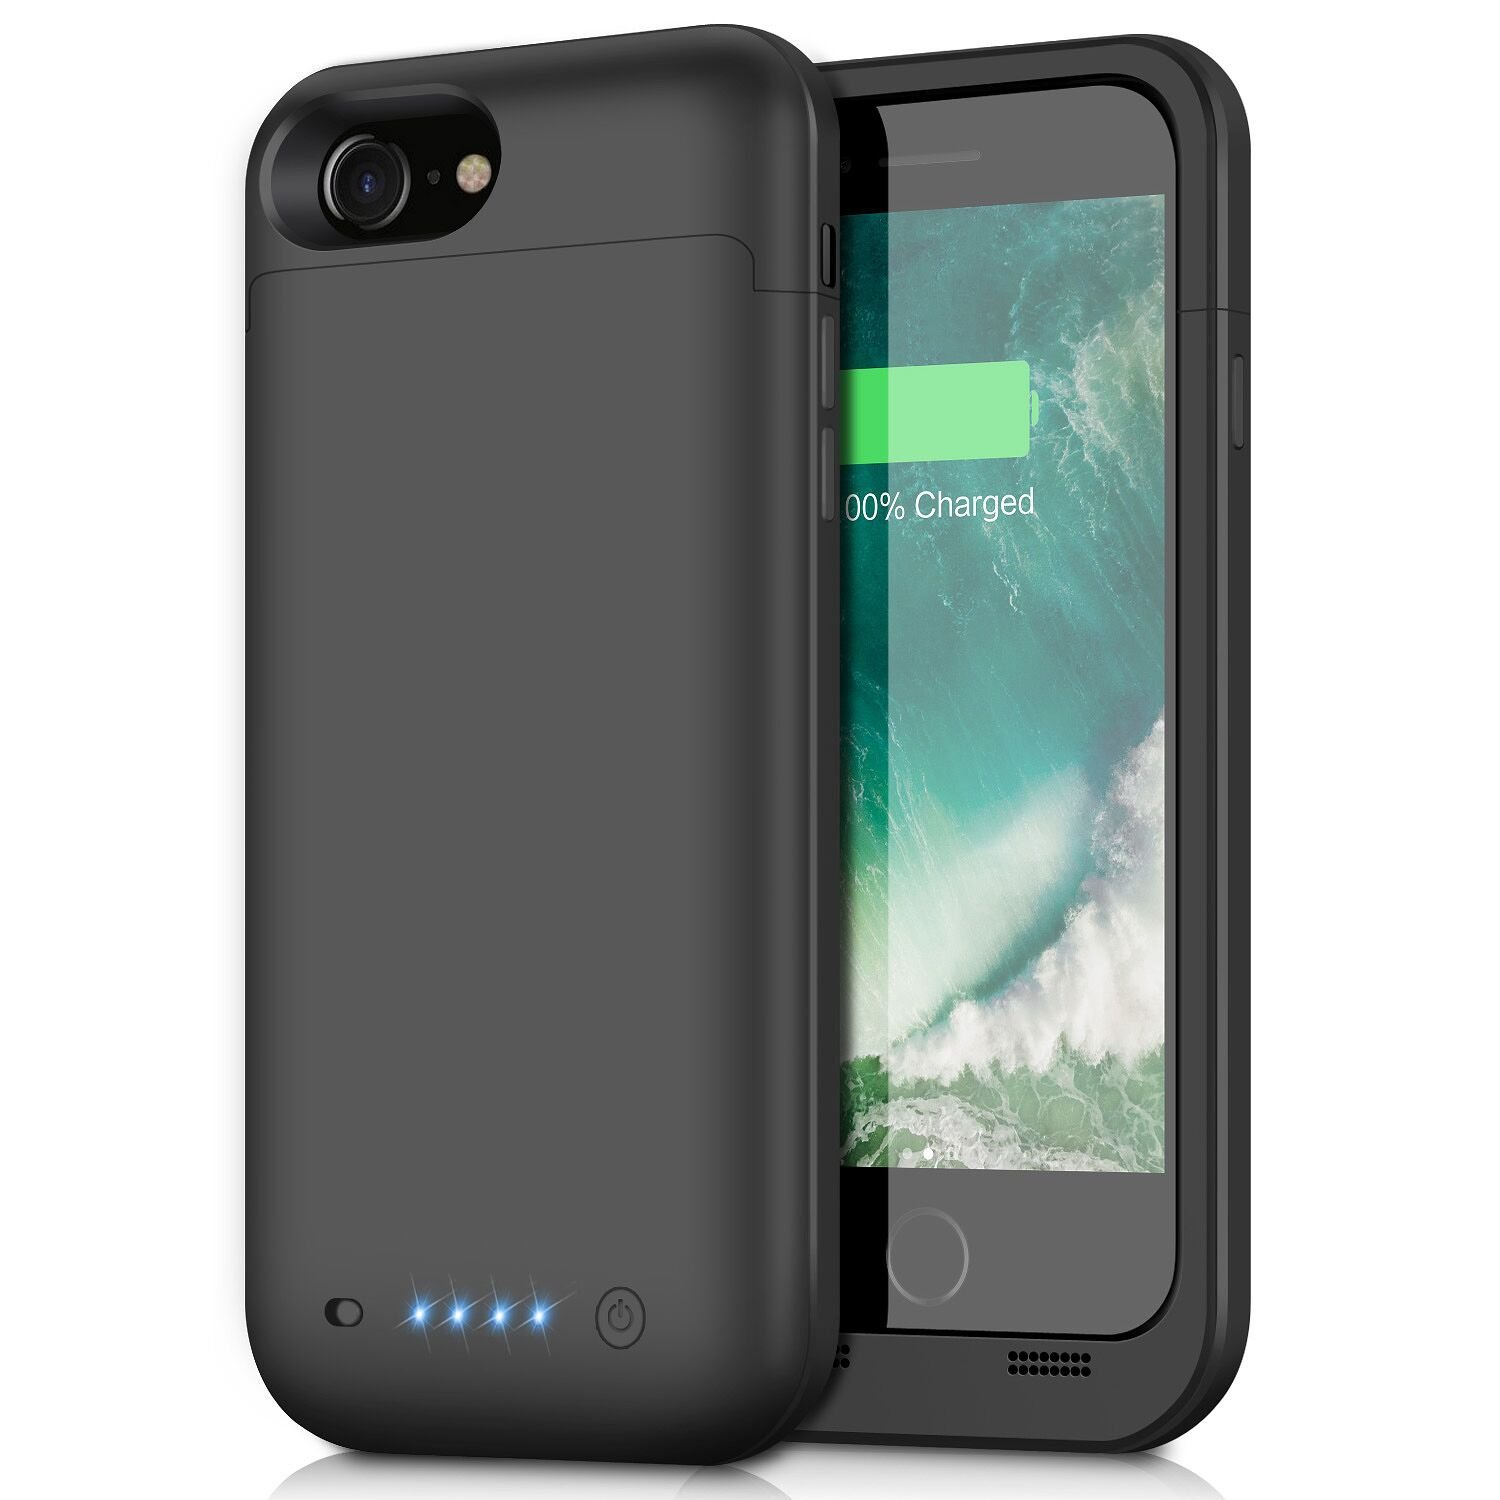 iPhone 8/7 Battery Case,4500mAh Portable Rechargeable Battery Pack Charger Case for Apple iPhone 8 iPhone 7 Extended Charging Bank Backup Ultra Slim (Black) by Pxwaxpy (Image #1)